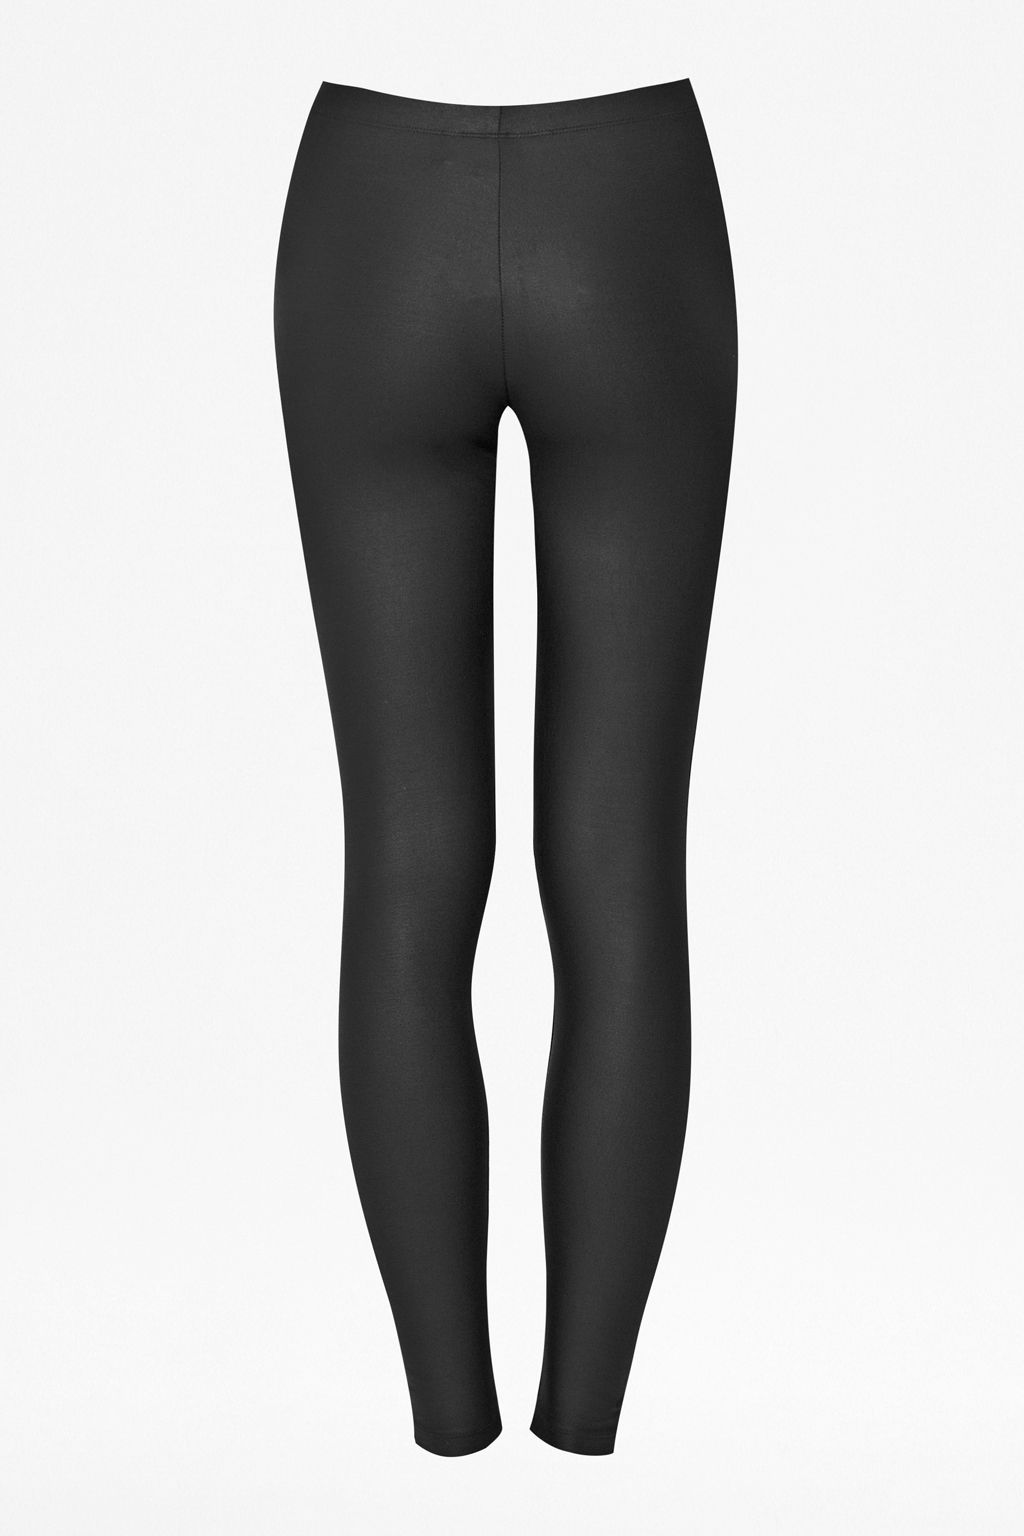 Pipa coated jersey legging